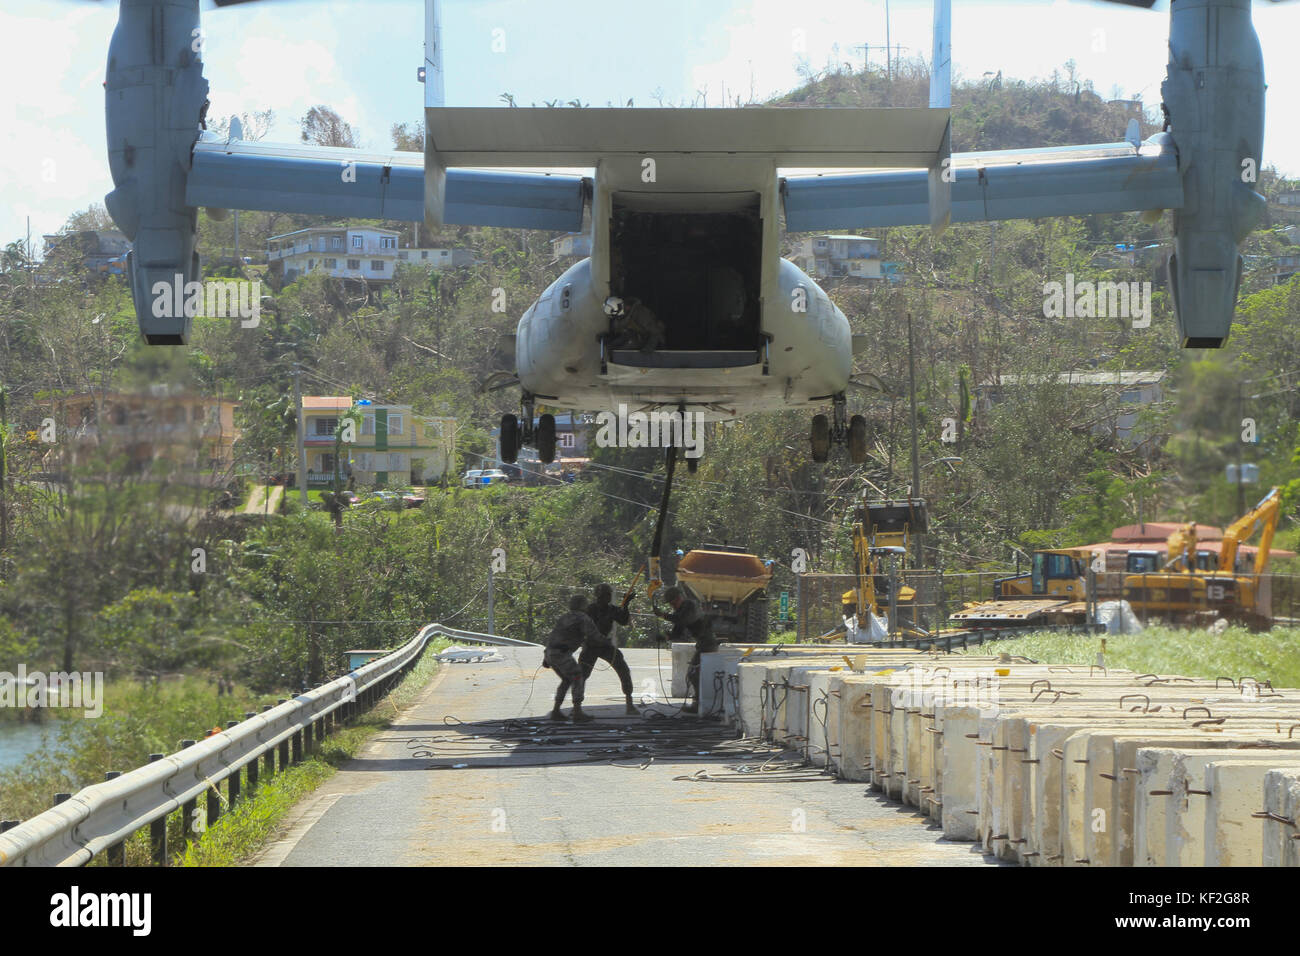 U.S. Marines attach a concrete barrier to a V-22 Osprey aircraft as they work to rebuild the damage to the Guajataca - Stock Image